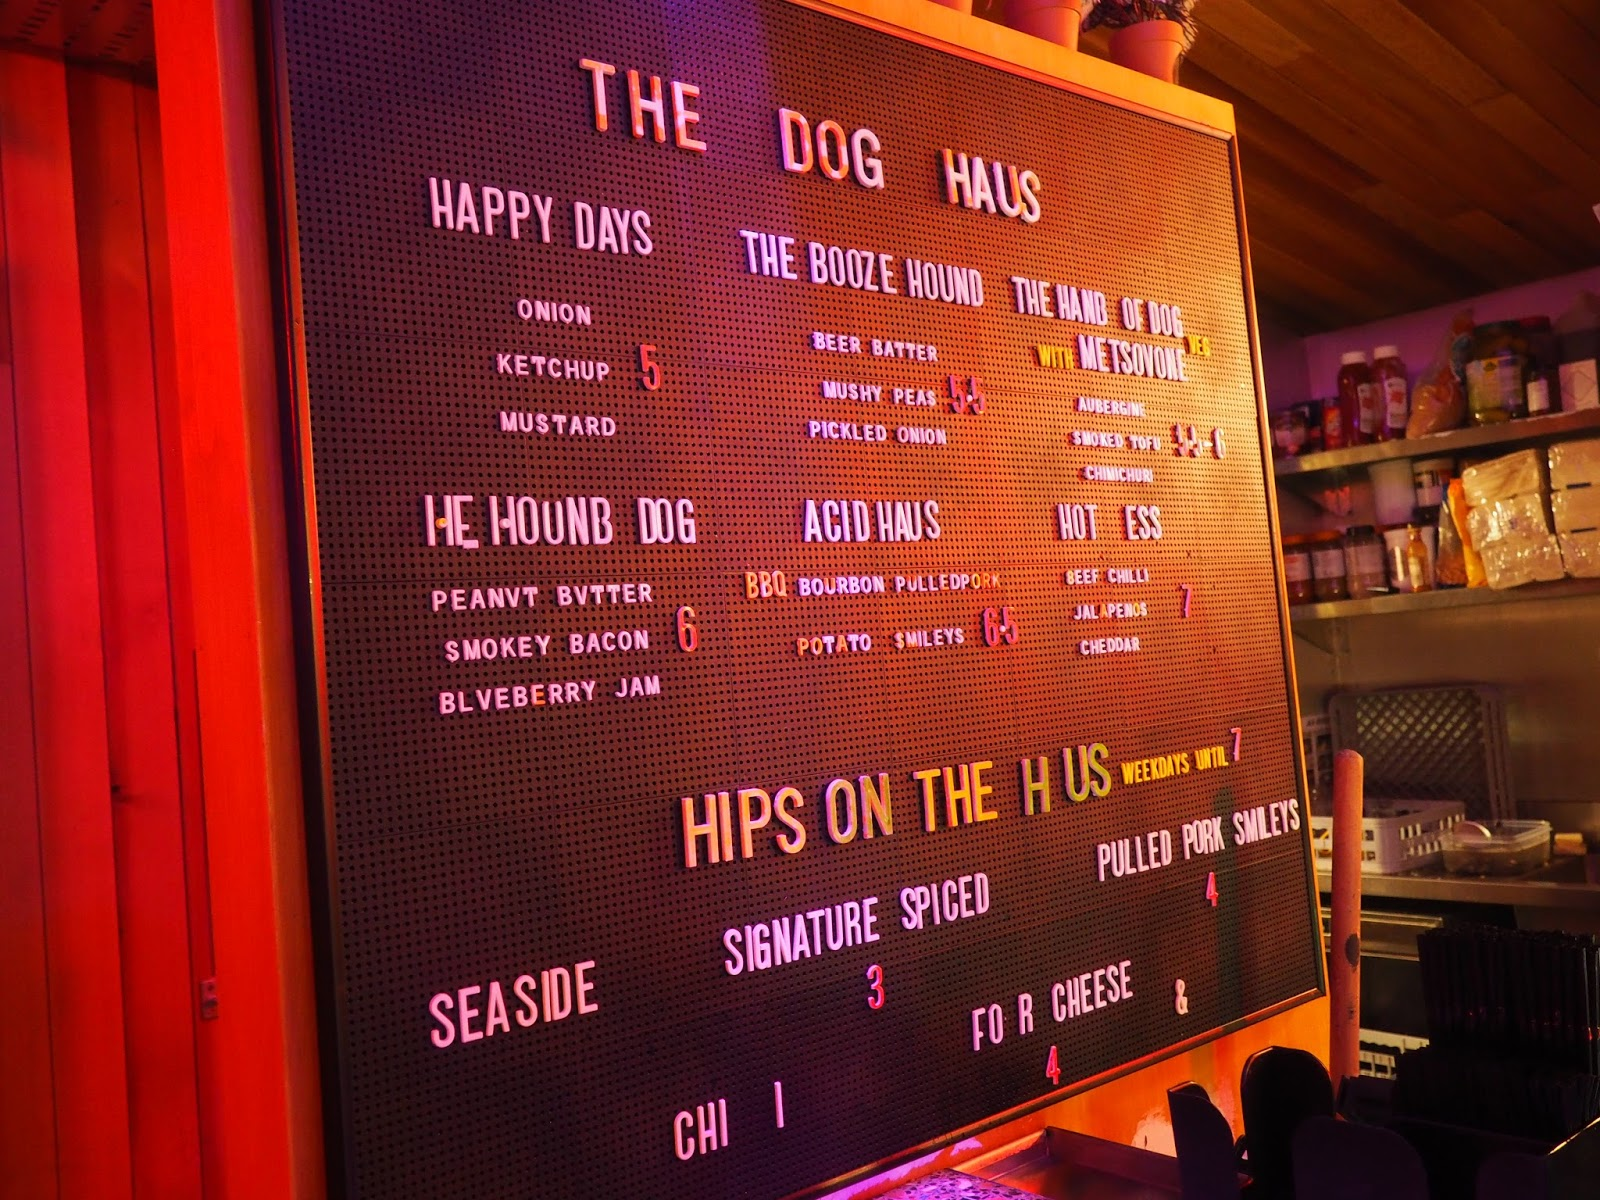 Brighton | Who's in the Dog Haus?